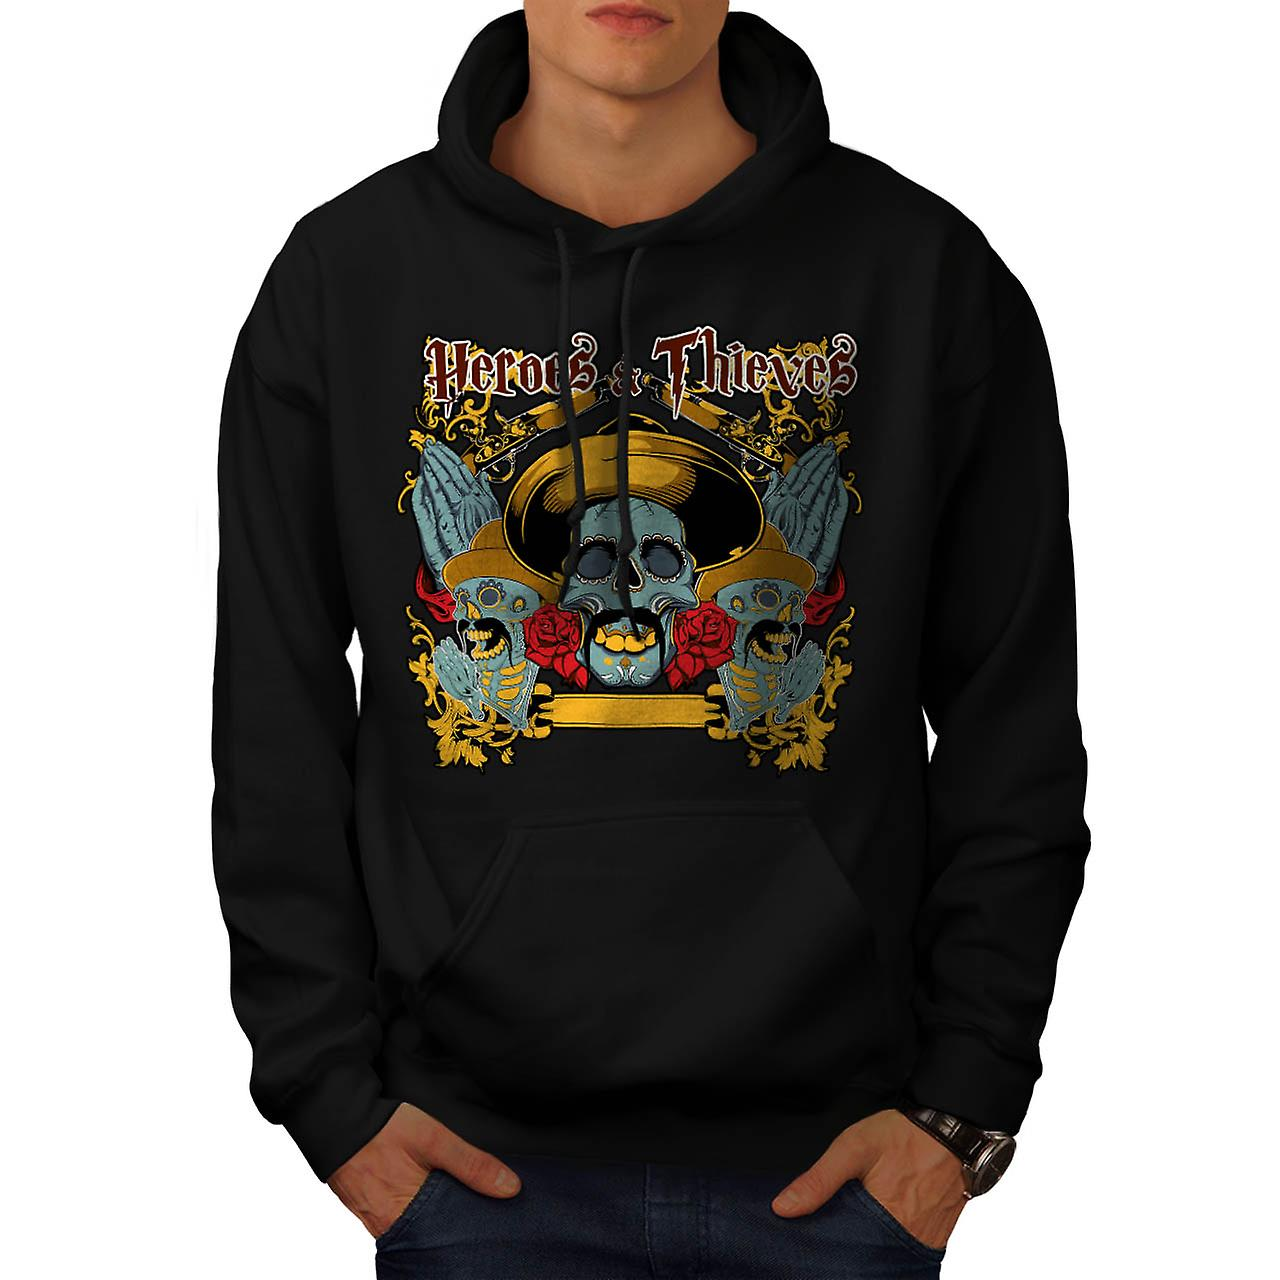 Heroes Thieves Mexico Dead Skull Men Black Hoodie | Wellcoda